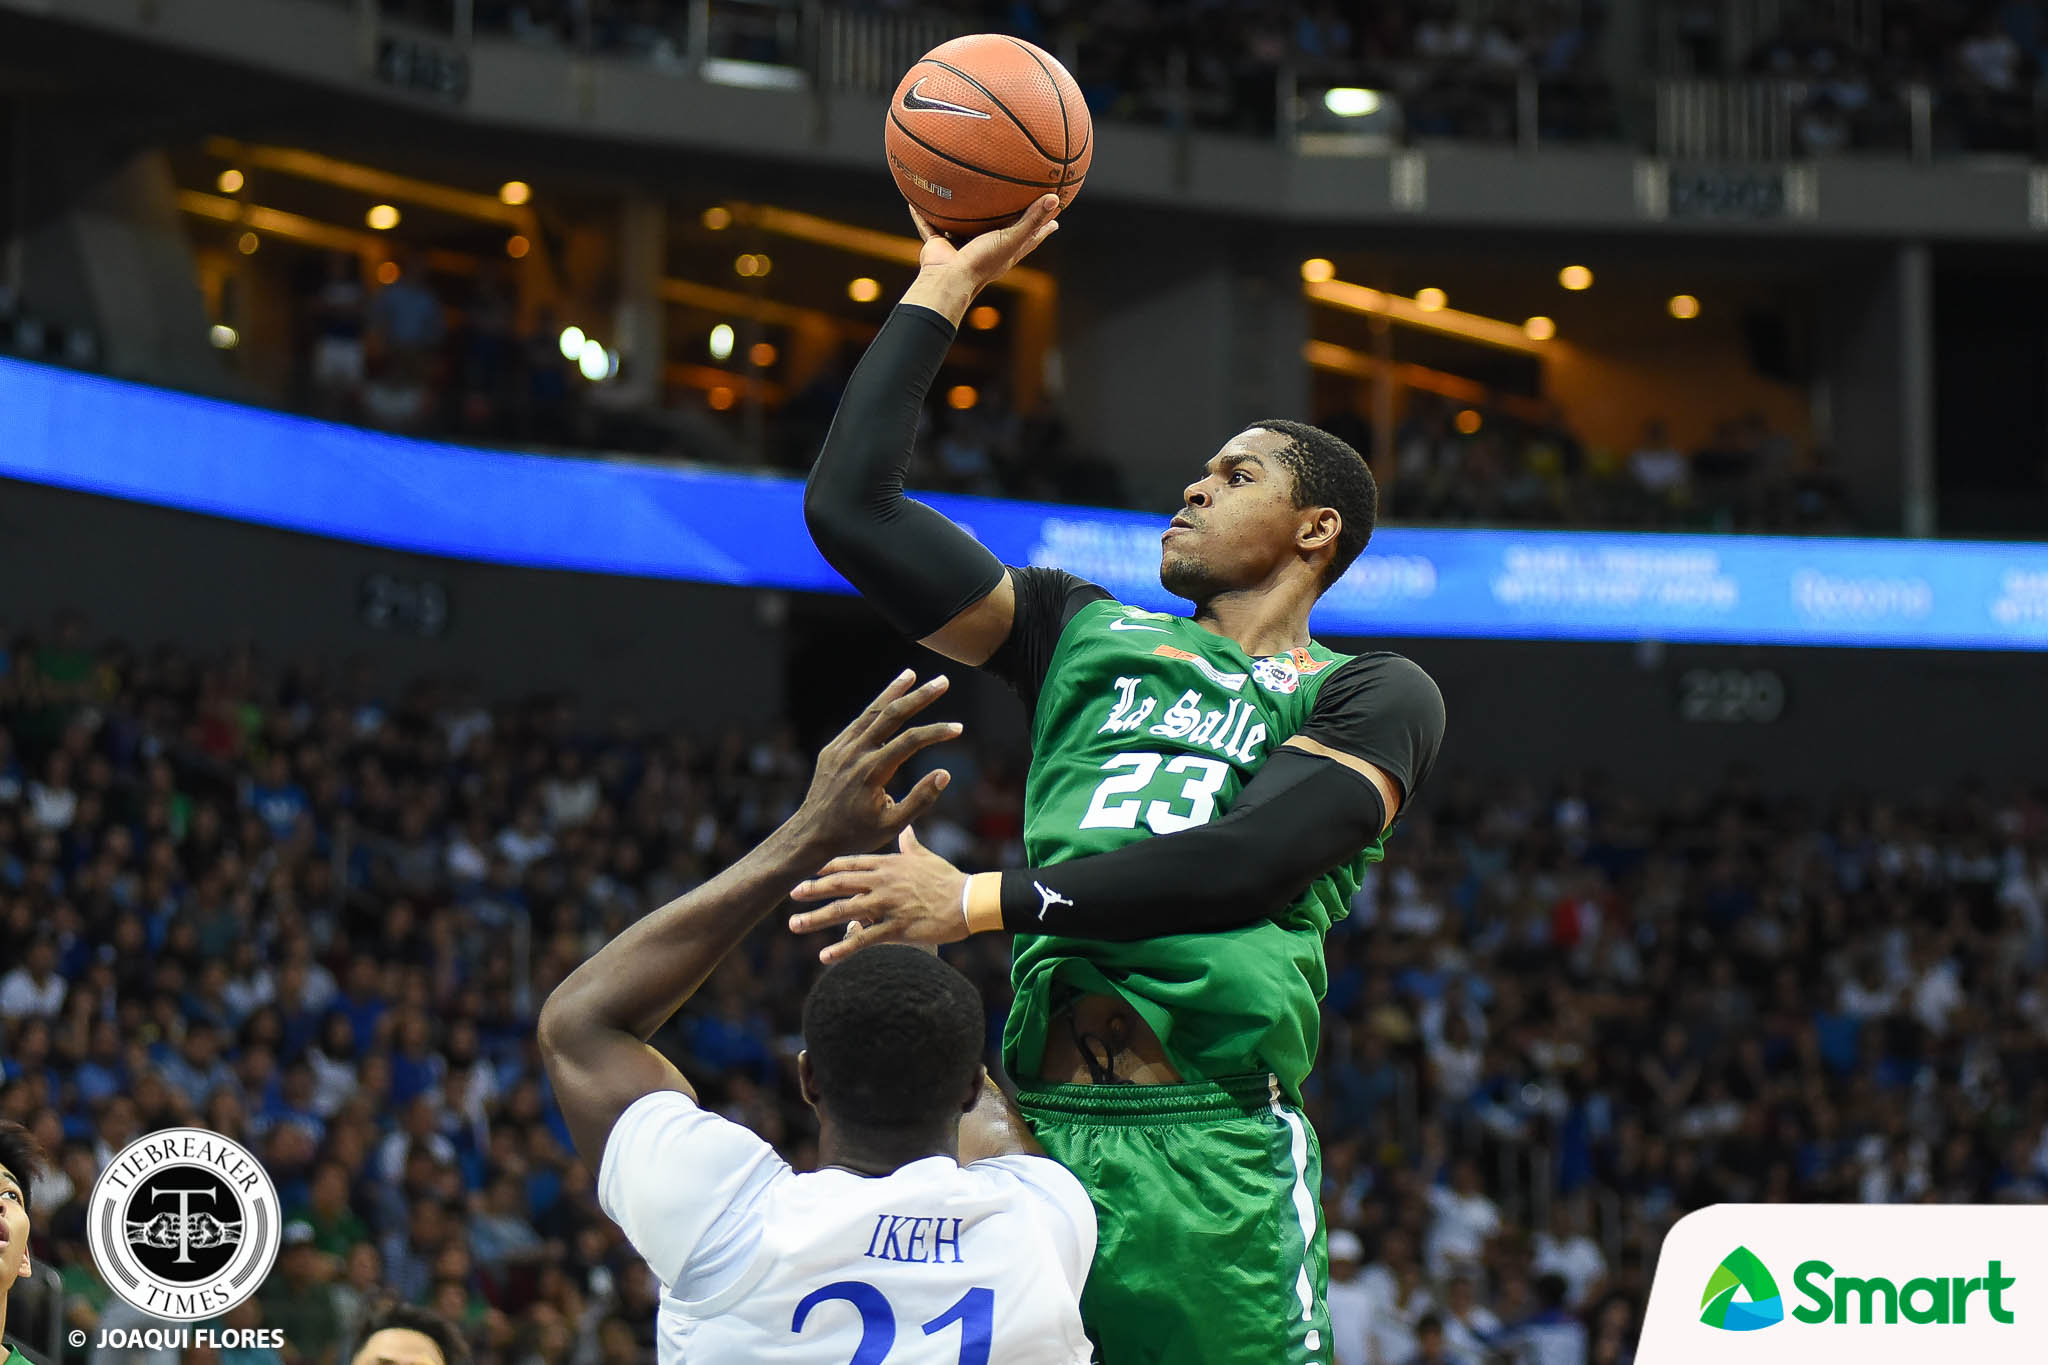 Philippine Sports News - Tiebreaker Times Emotions, physicality get best of Ben Mbala in Game One Basketball DLSU News UAAP  UAAP Season 80 Men's Basketball UAAP Season 80 DLSU Men's Basketball Ben Mbala